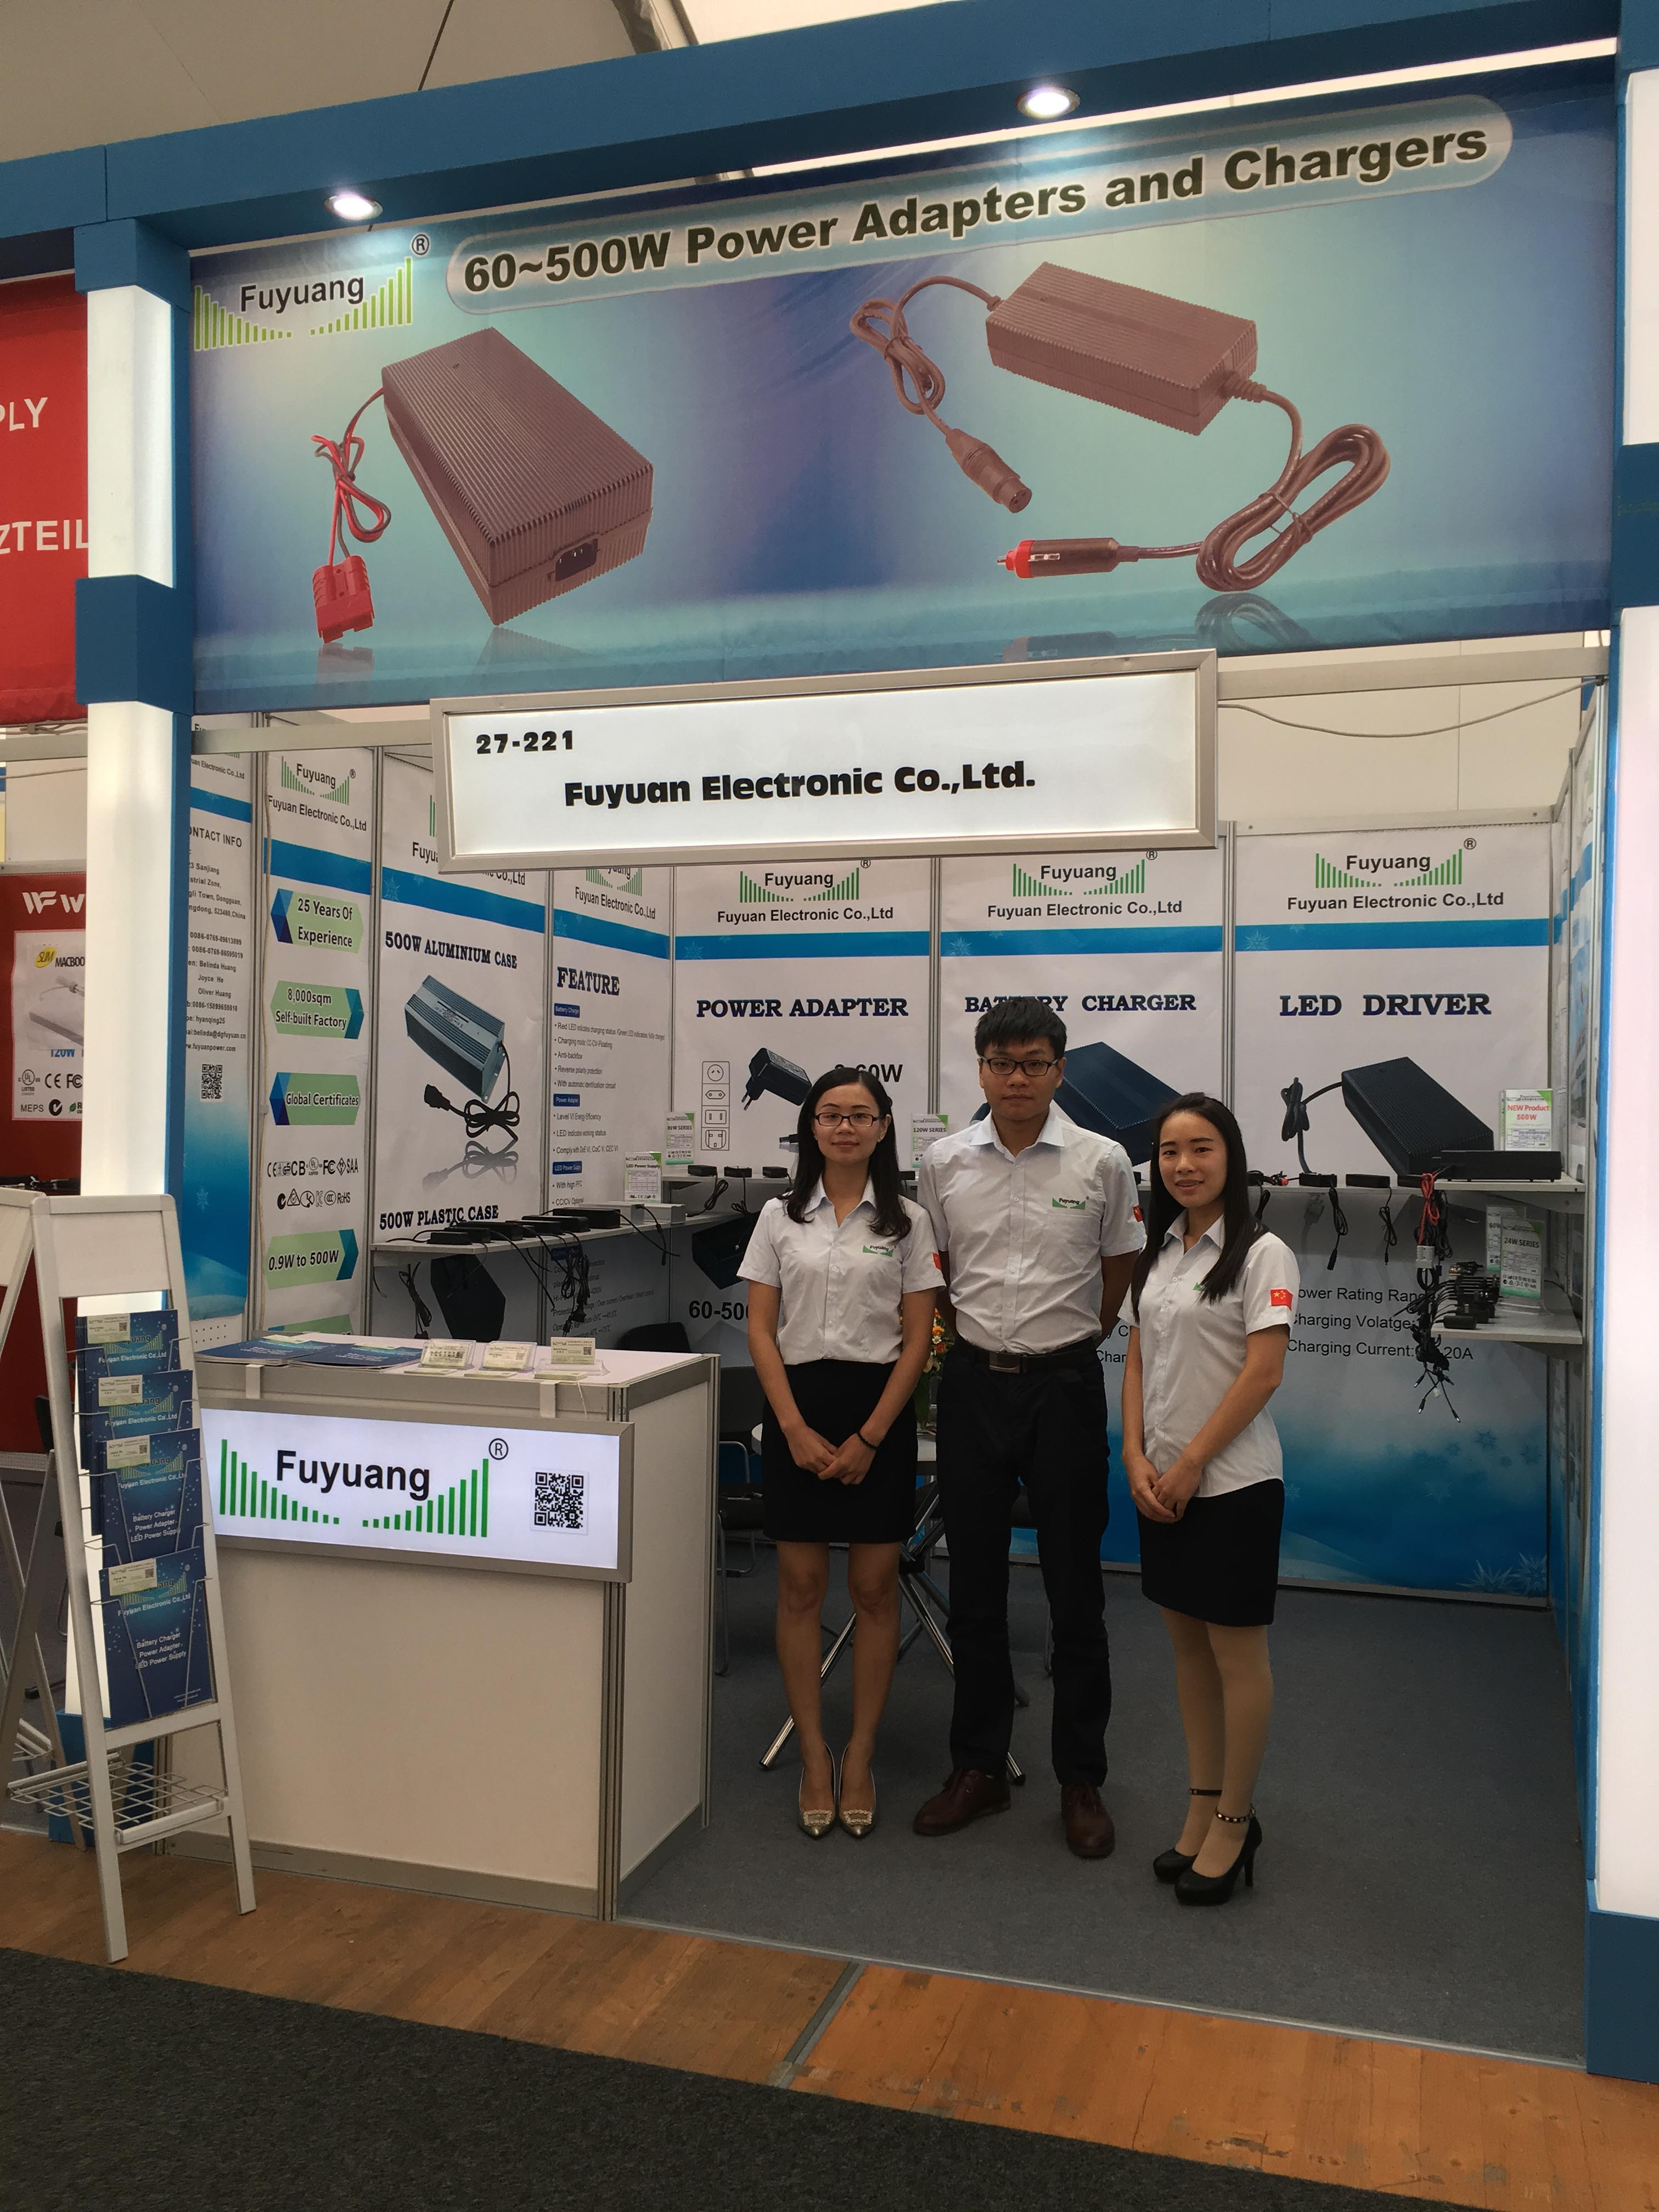 2016 IFA Consumer Electronic Exhibition In Berlin